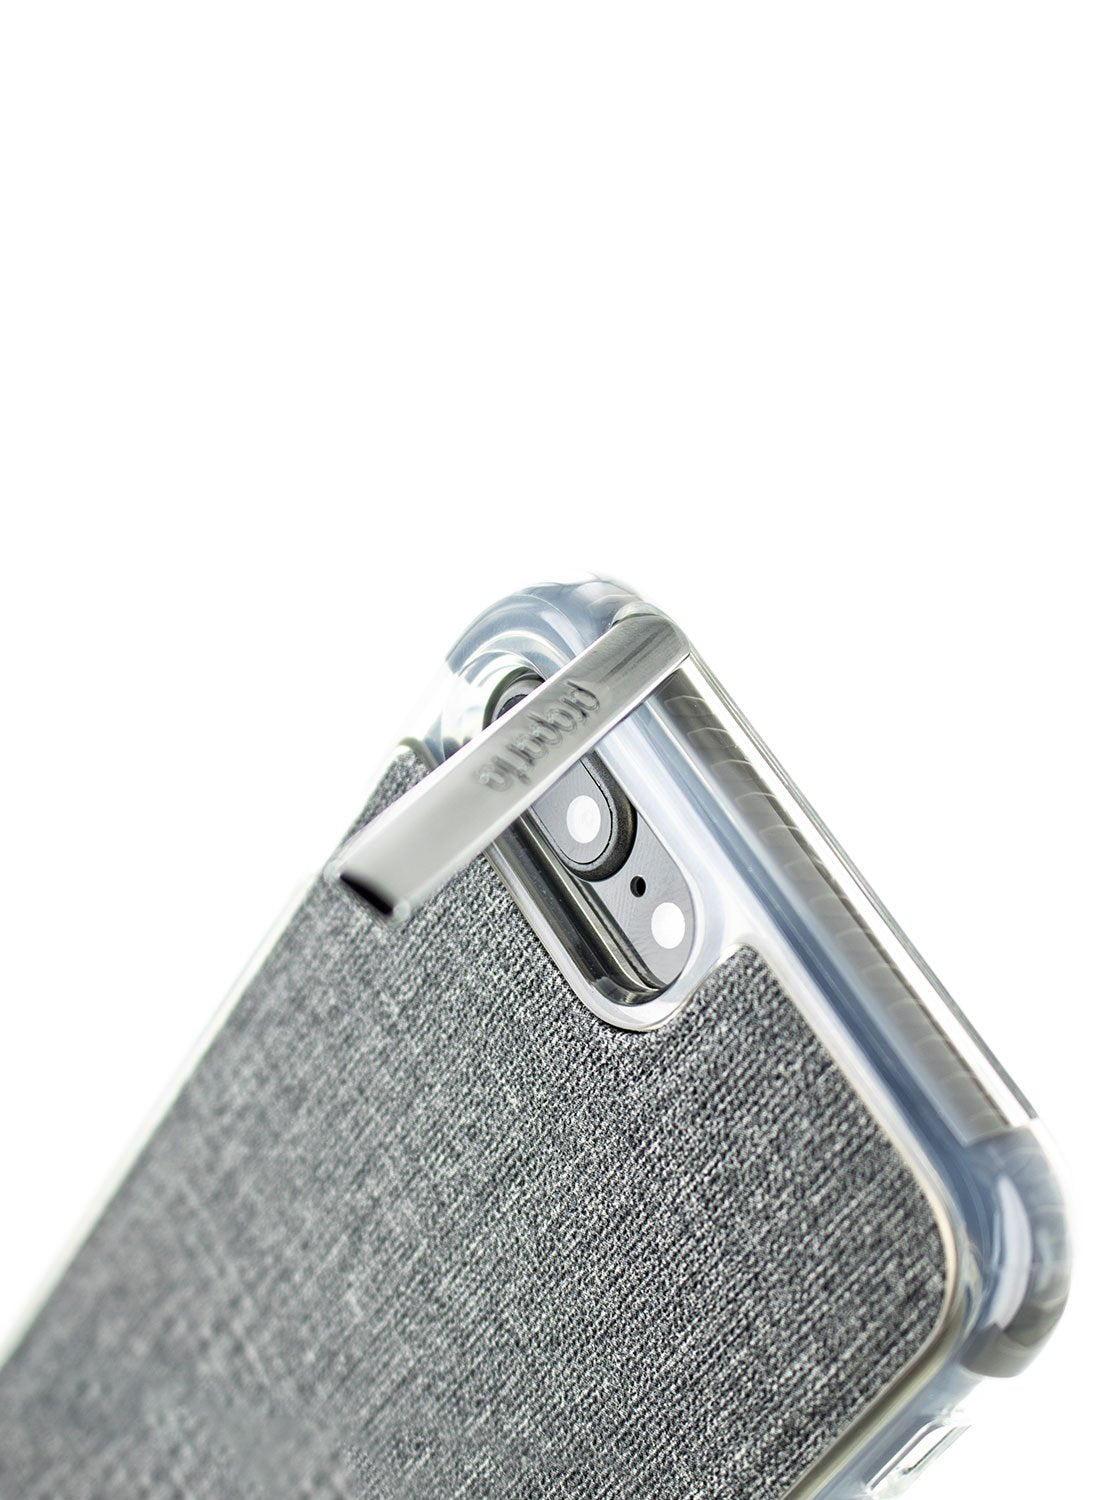 Kickstand detail image of the Proporta Apple iPhone 8 Plus / 7 Plus phone case in Grey